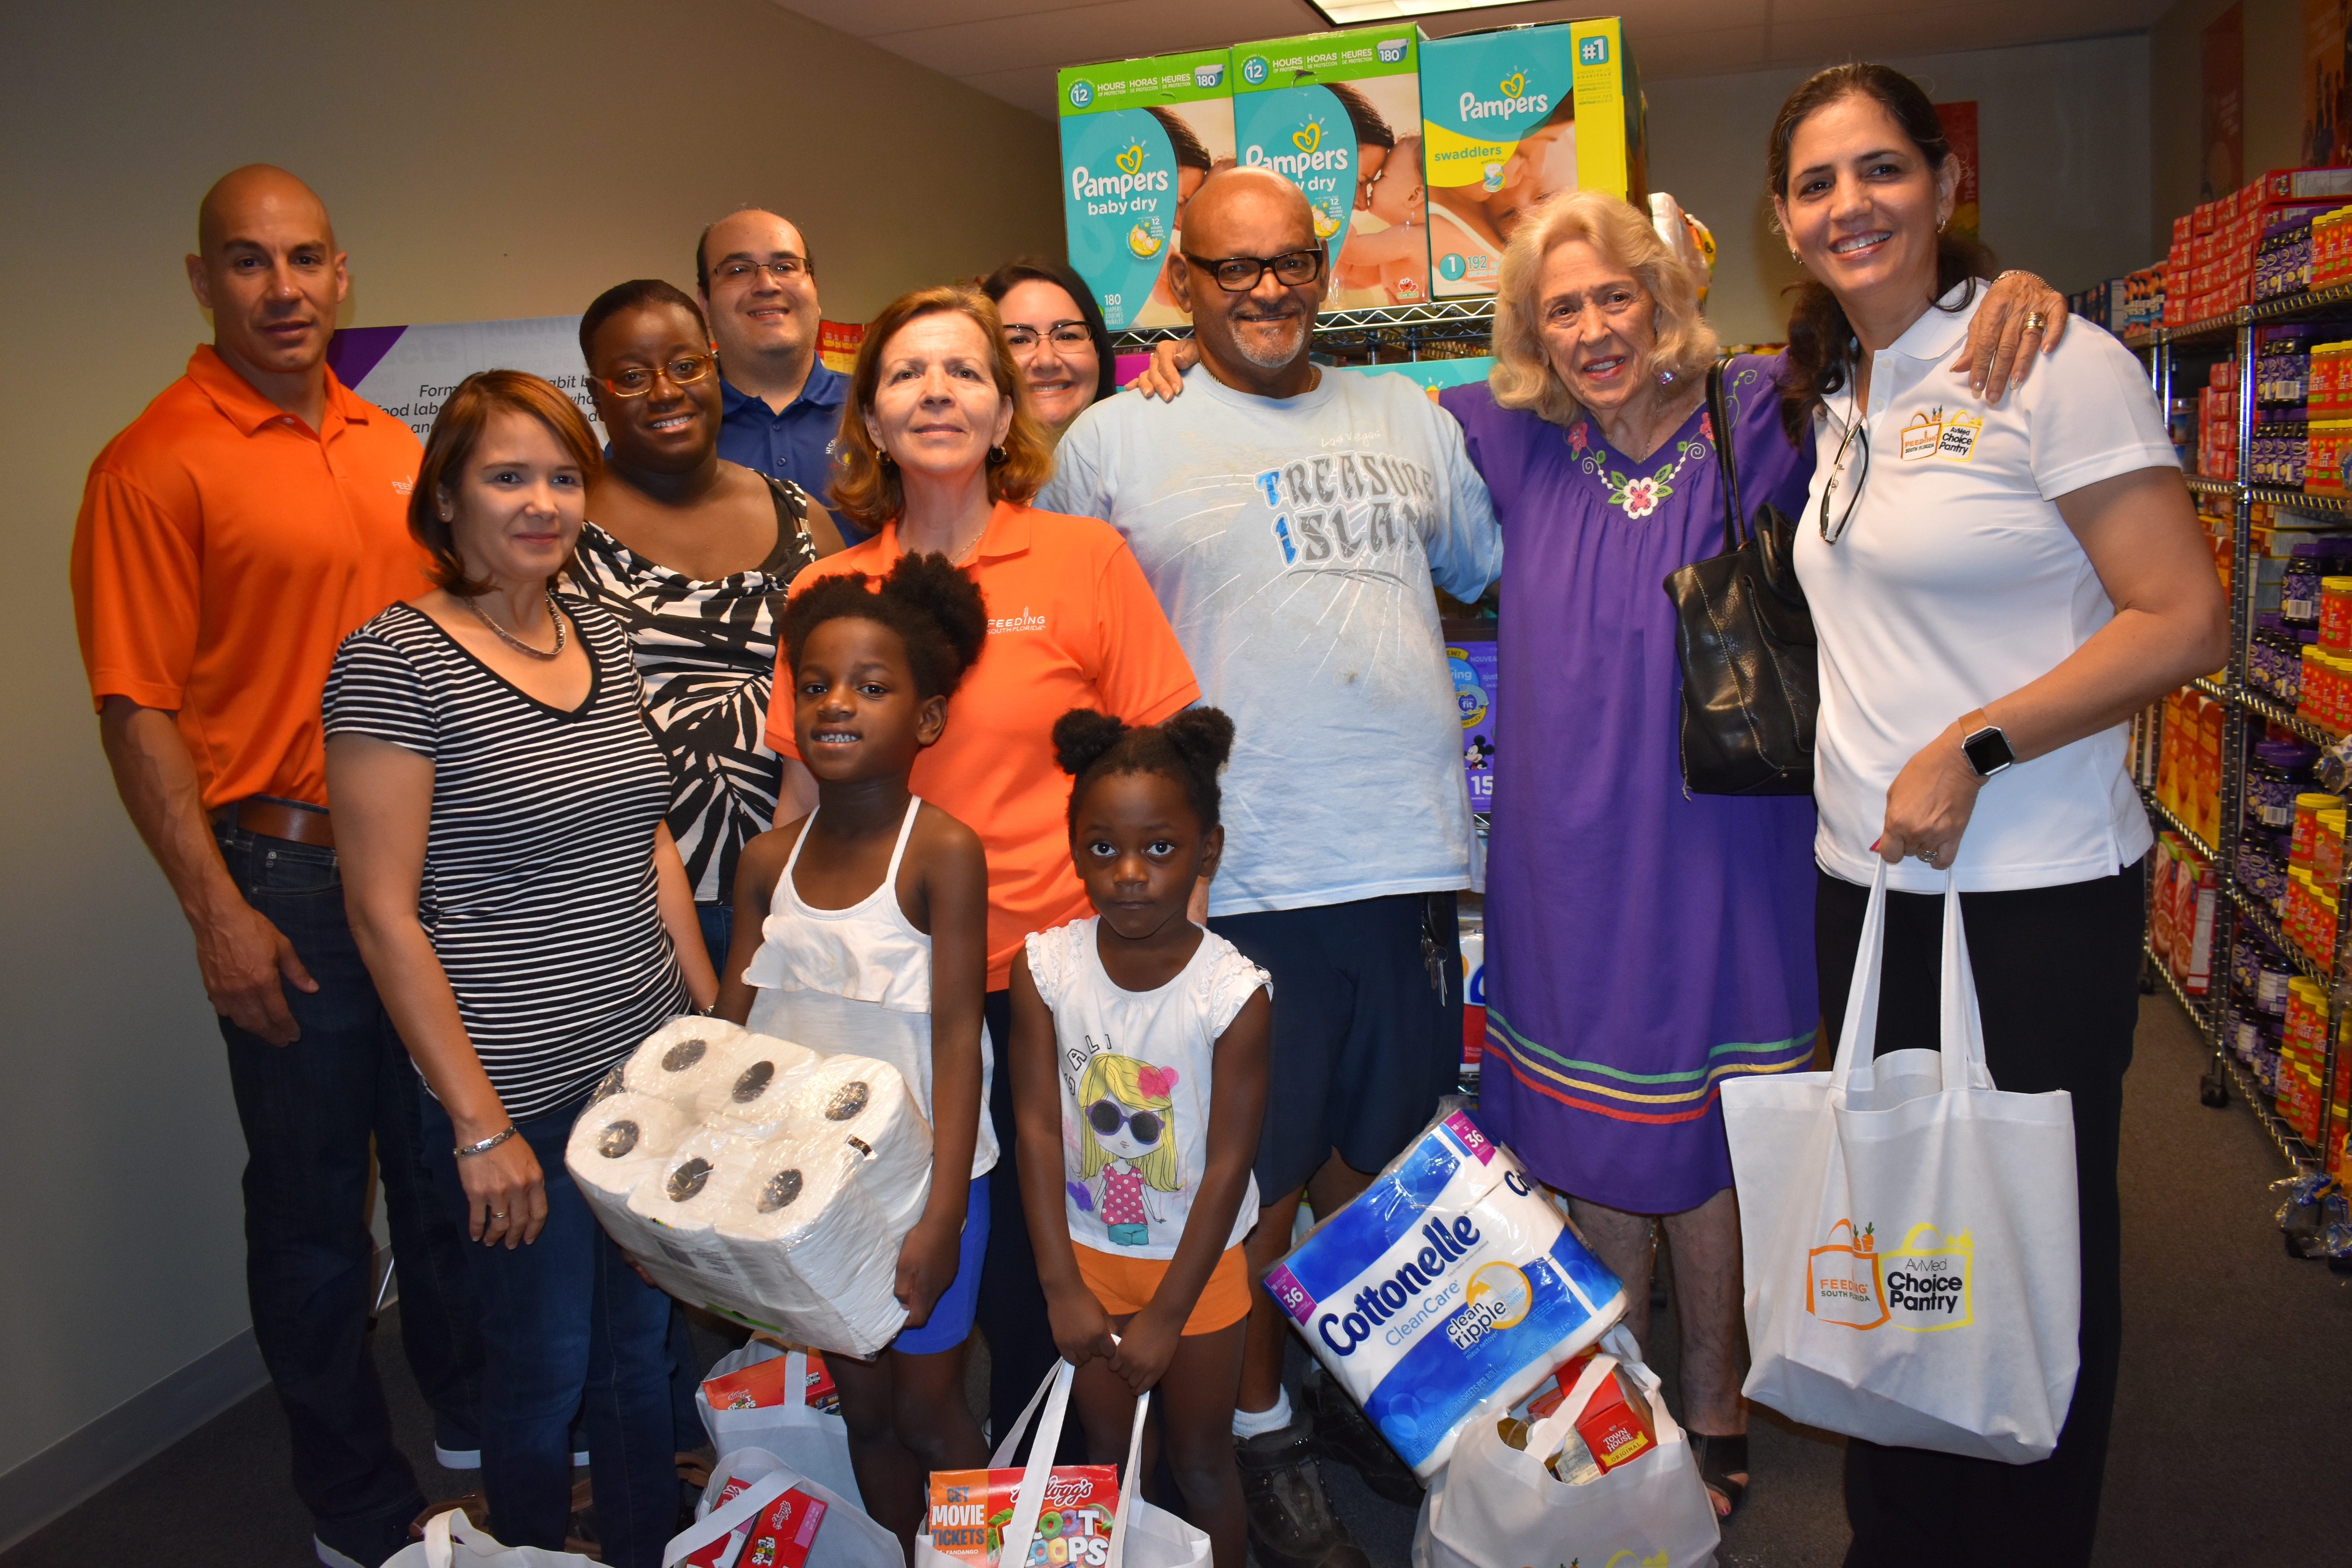 Feeding South Florida Launches its Choice Pantry Program